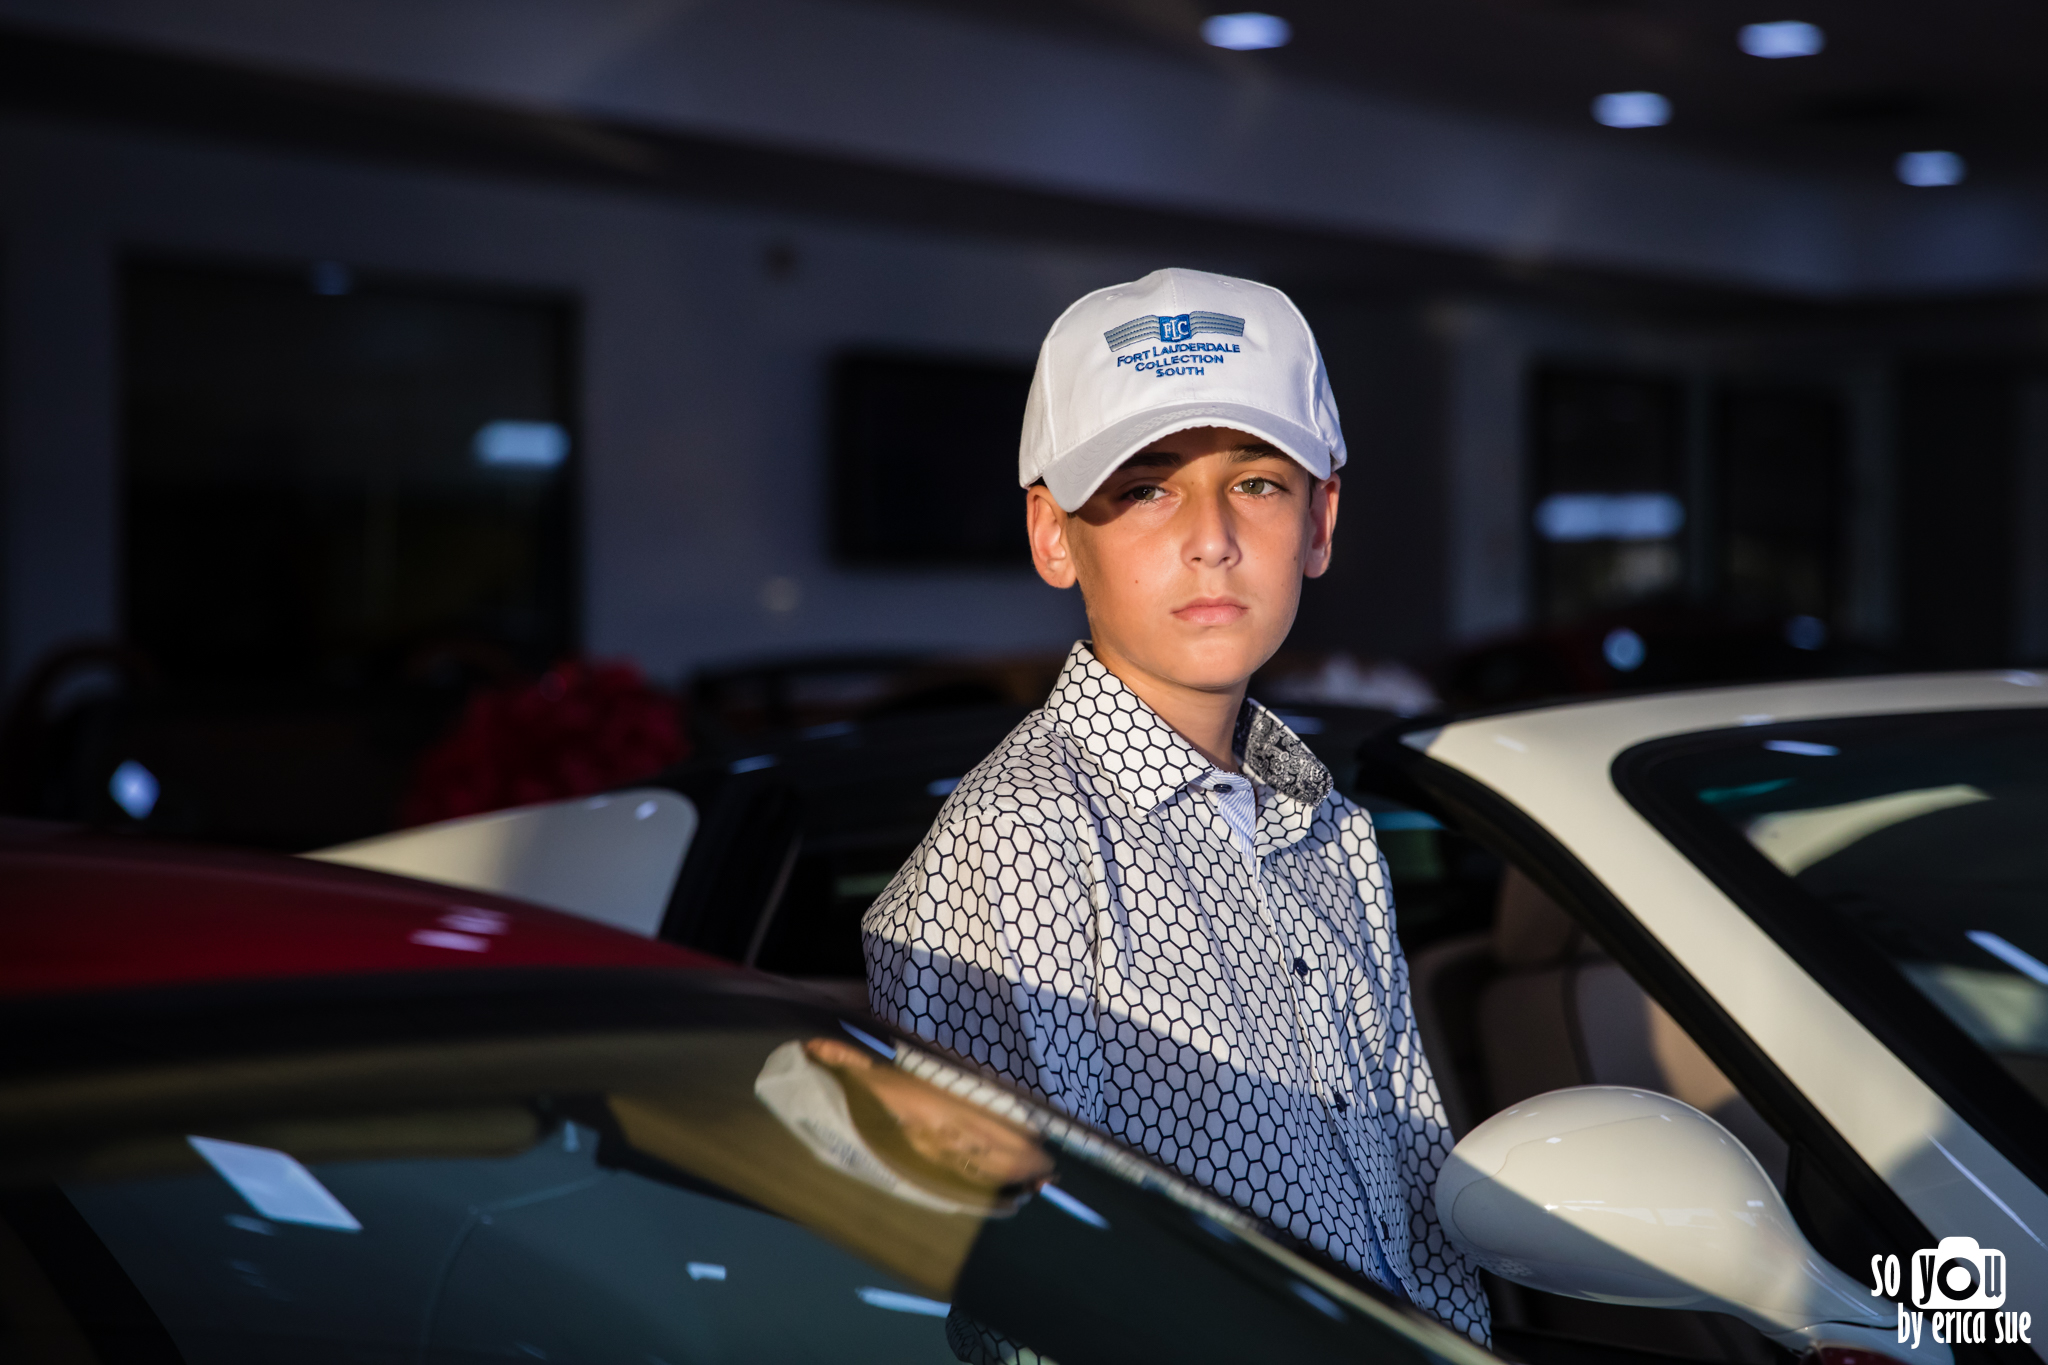 so-you-by-erica-sue-mitzvah-photographer-collection-luxury-car-ft-lauderdale-5113.jpg